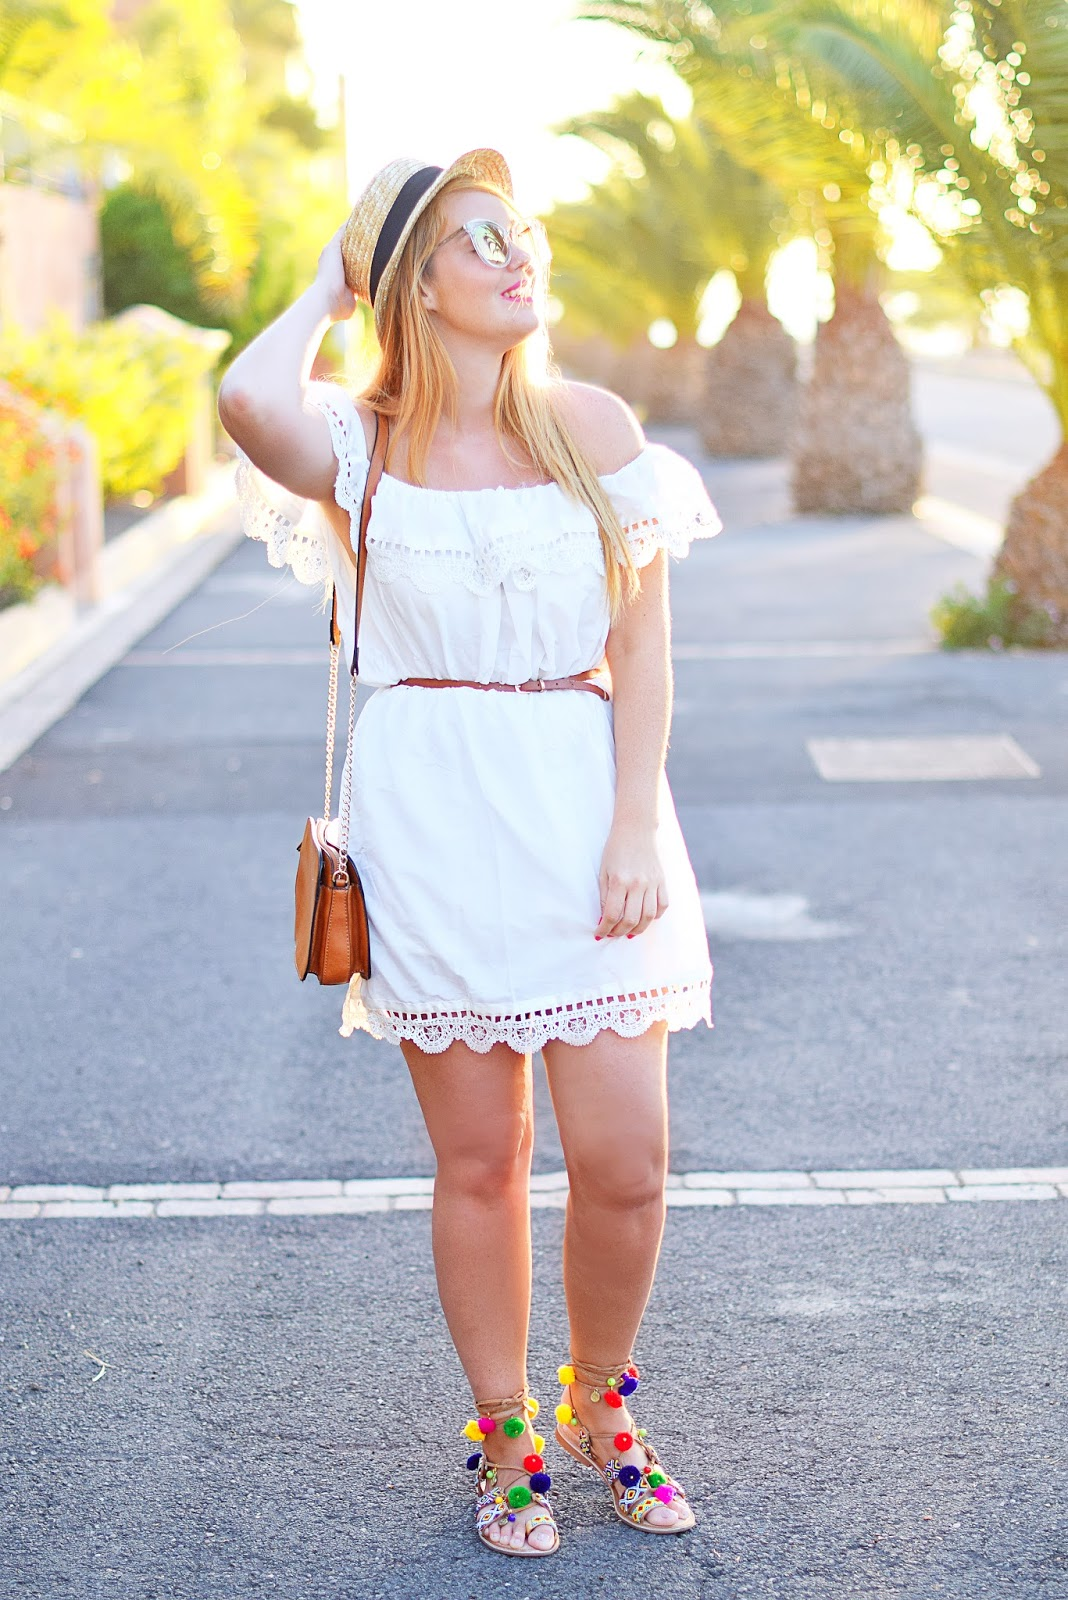 dress with off-shoulder, nery hdez, gioseppo, sandalias pom pom, borsalino, zerouv